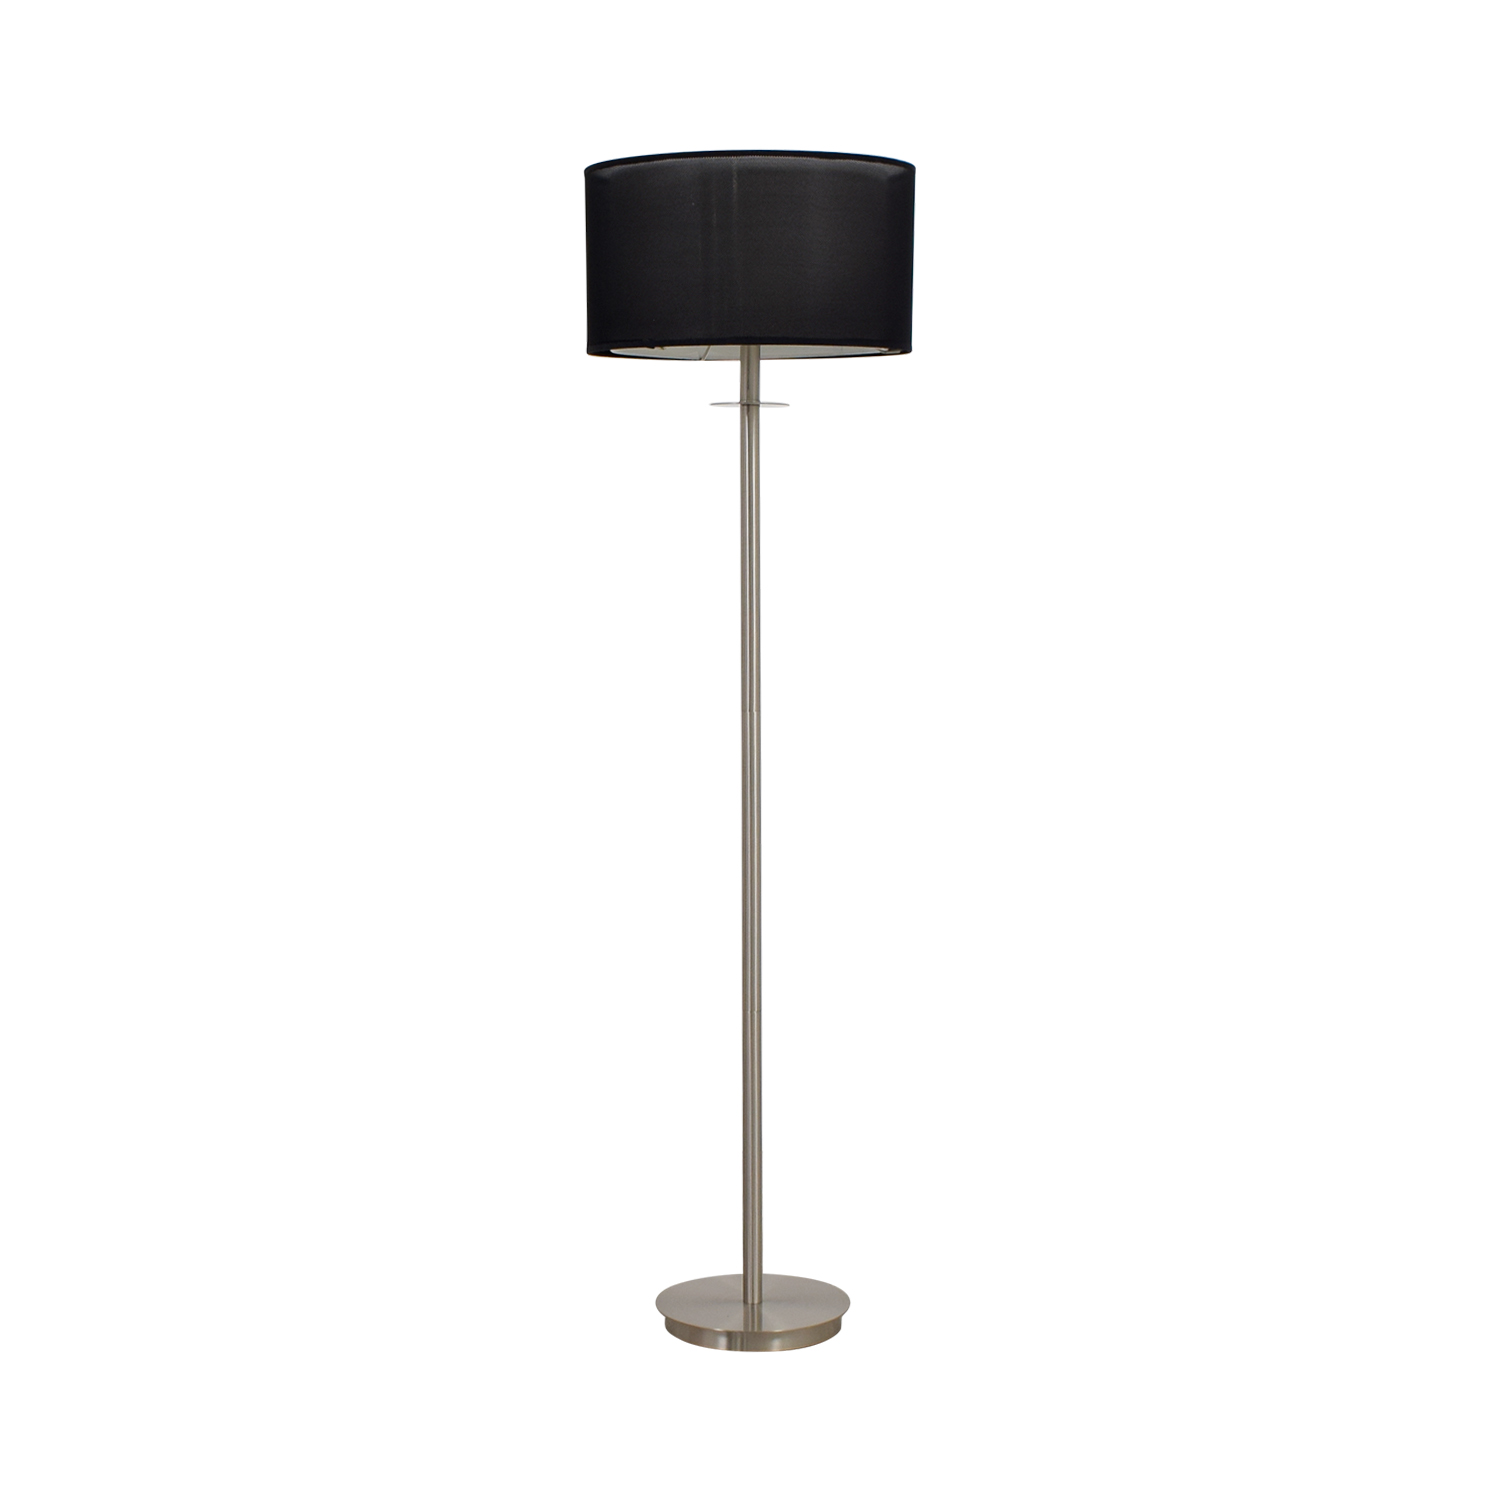 Floor Lamp Metal 80 Off Metal Floor Lamp With Black Shade Decor